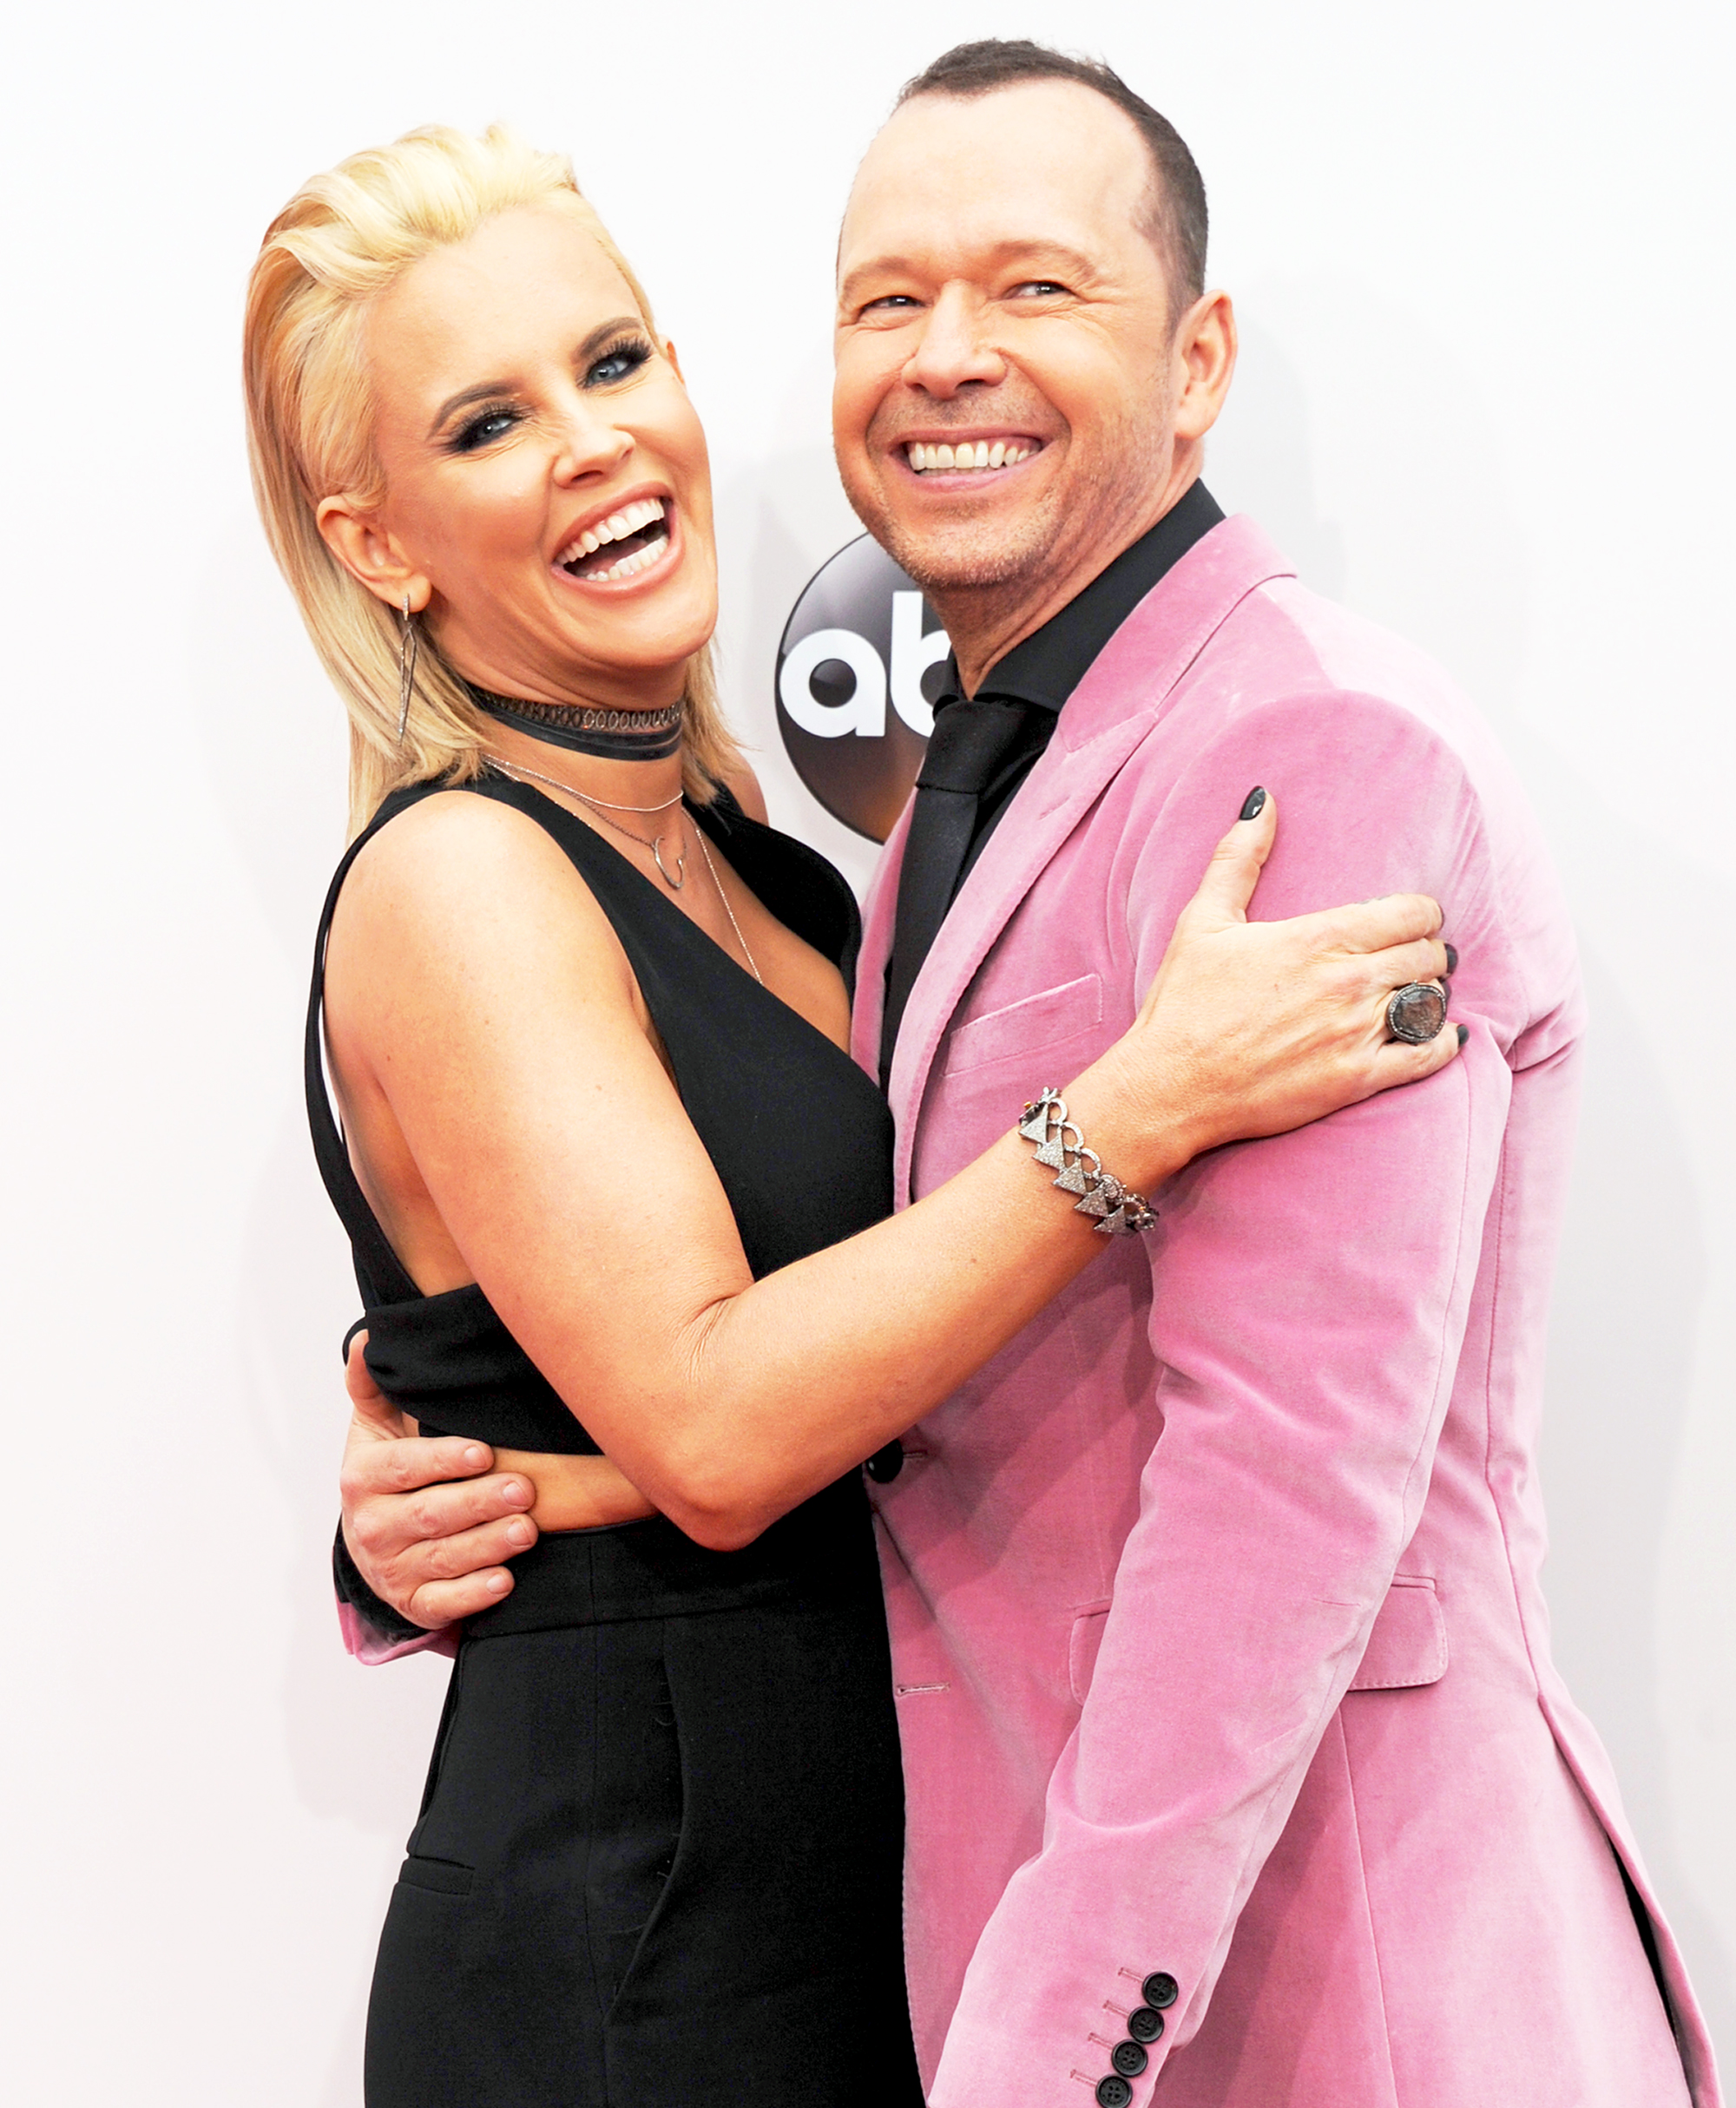 Jenny McCarthy and Donnie Wahlberg arrive at the 2016 American Music Awards at Microsoft Theater in Los Angeles, California.